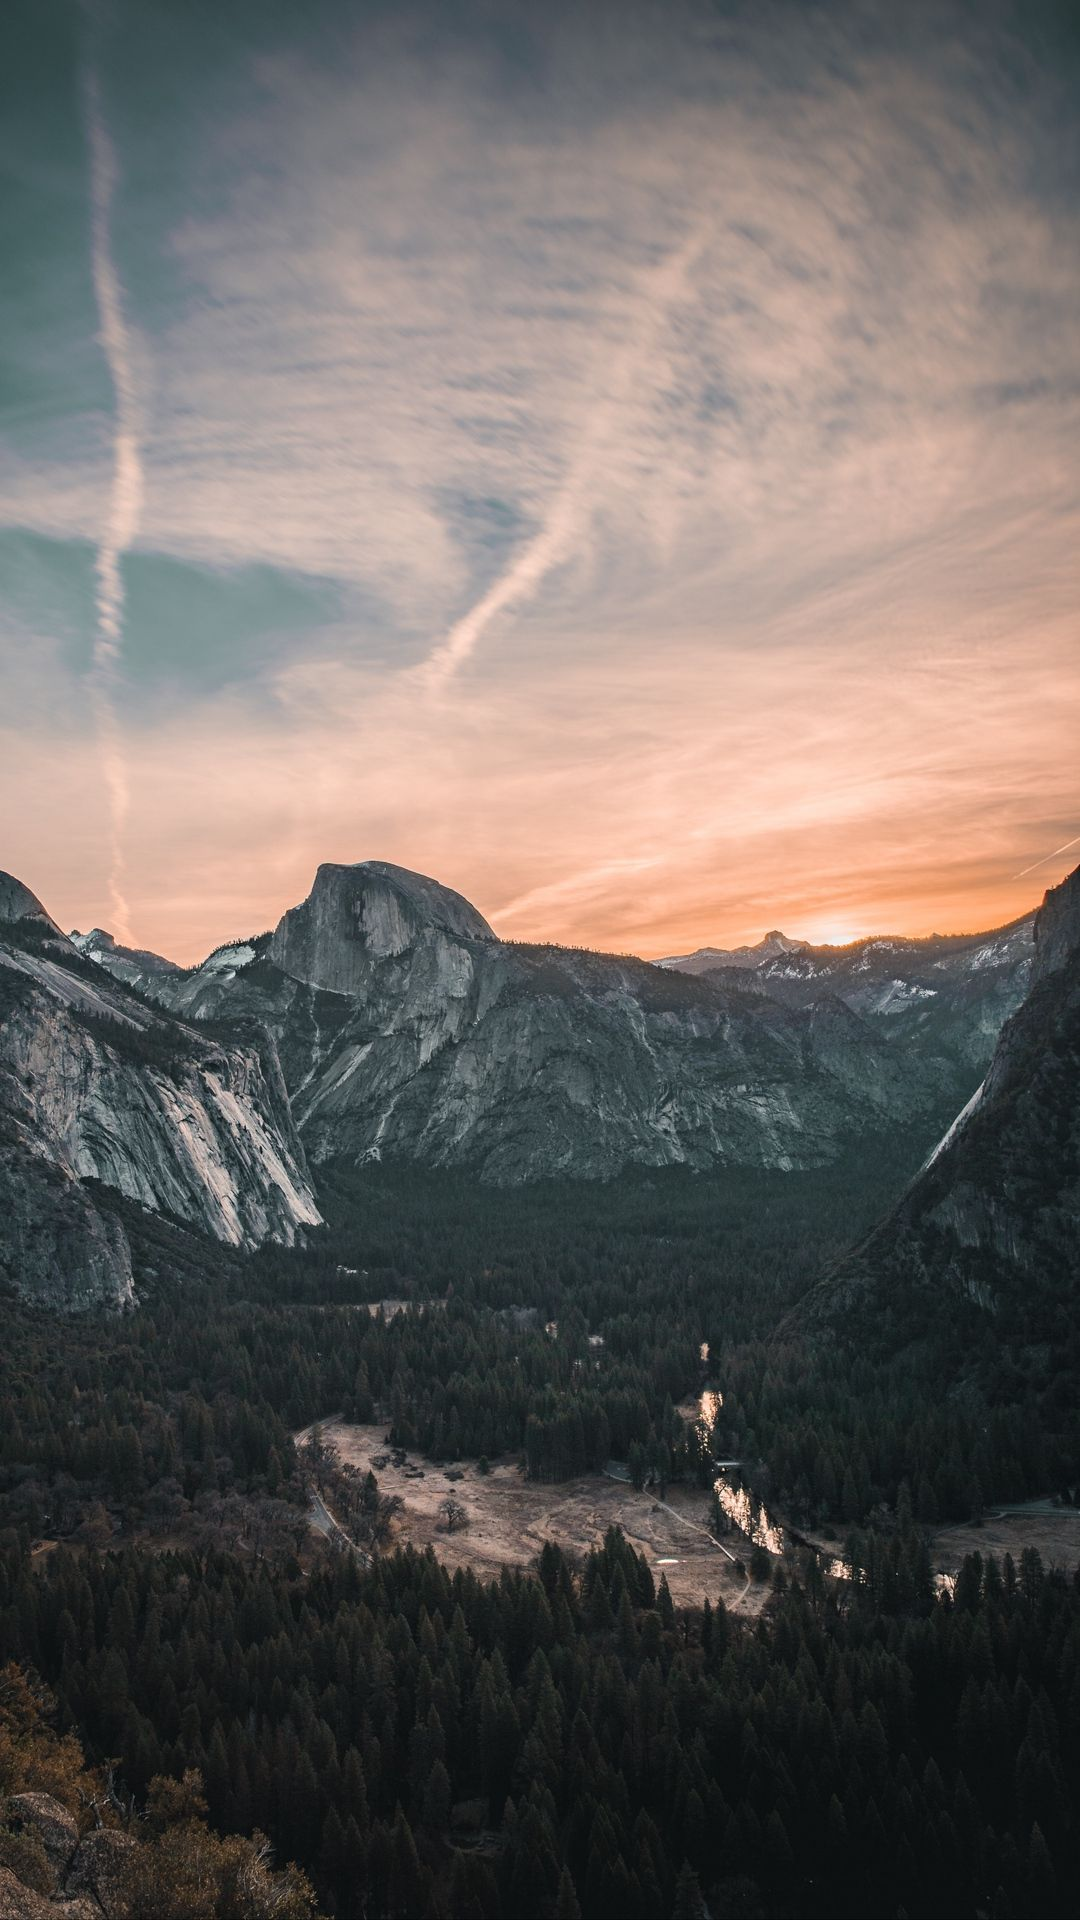 Yosemite Mountain